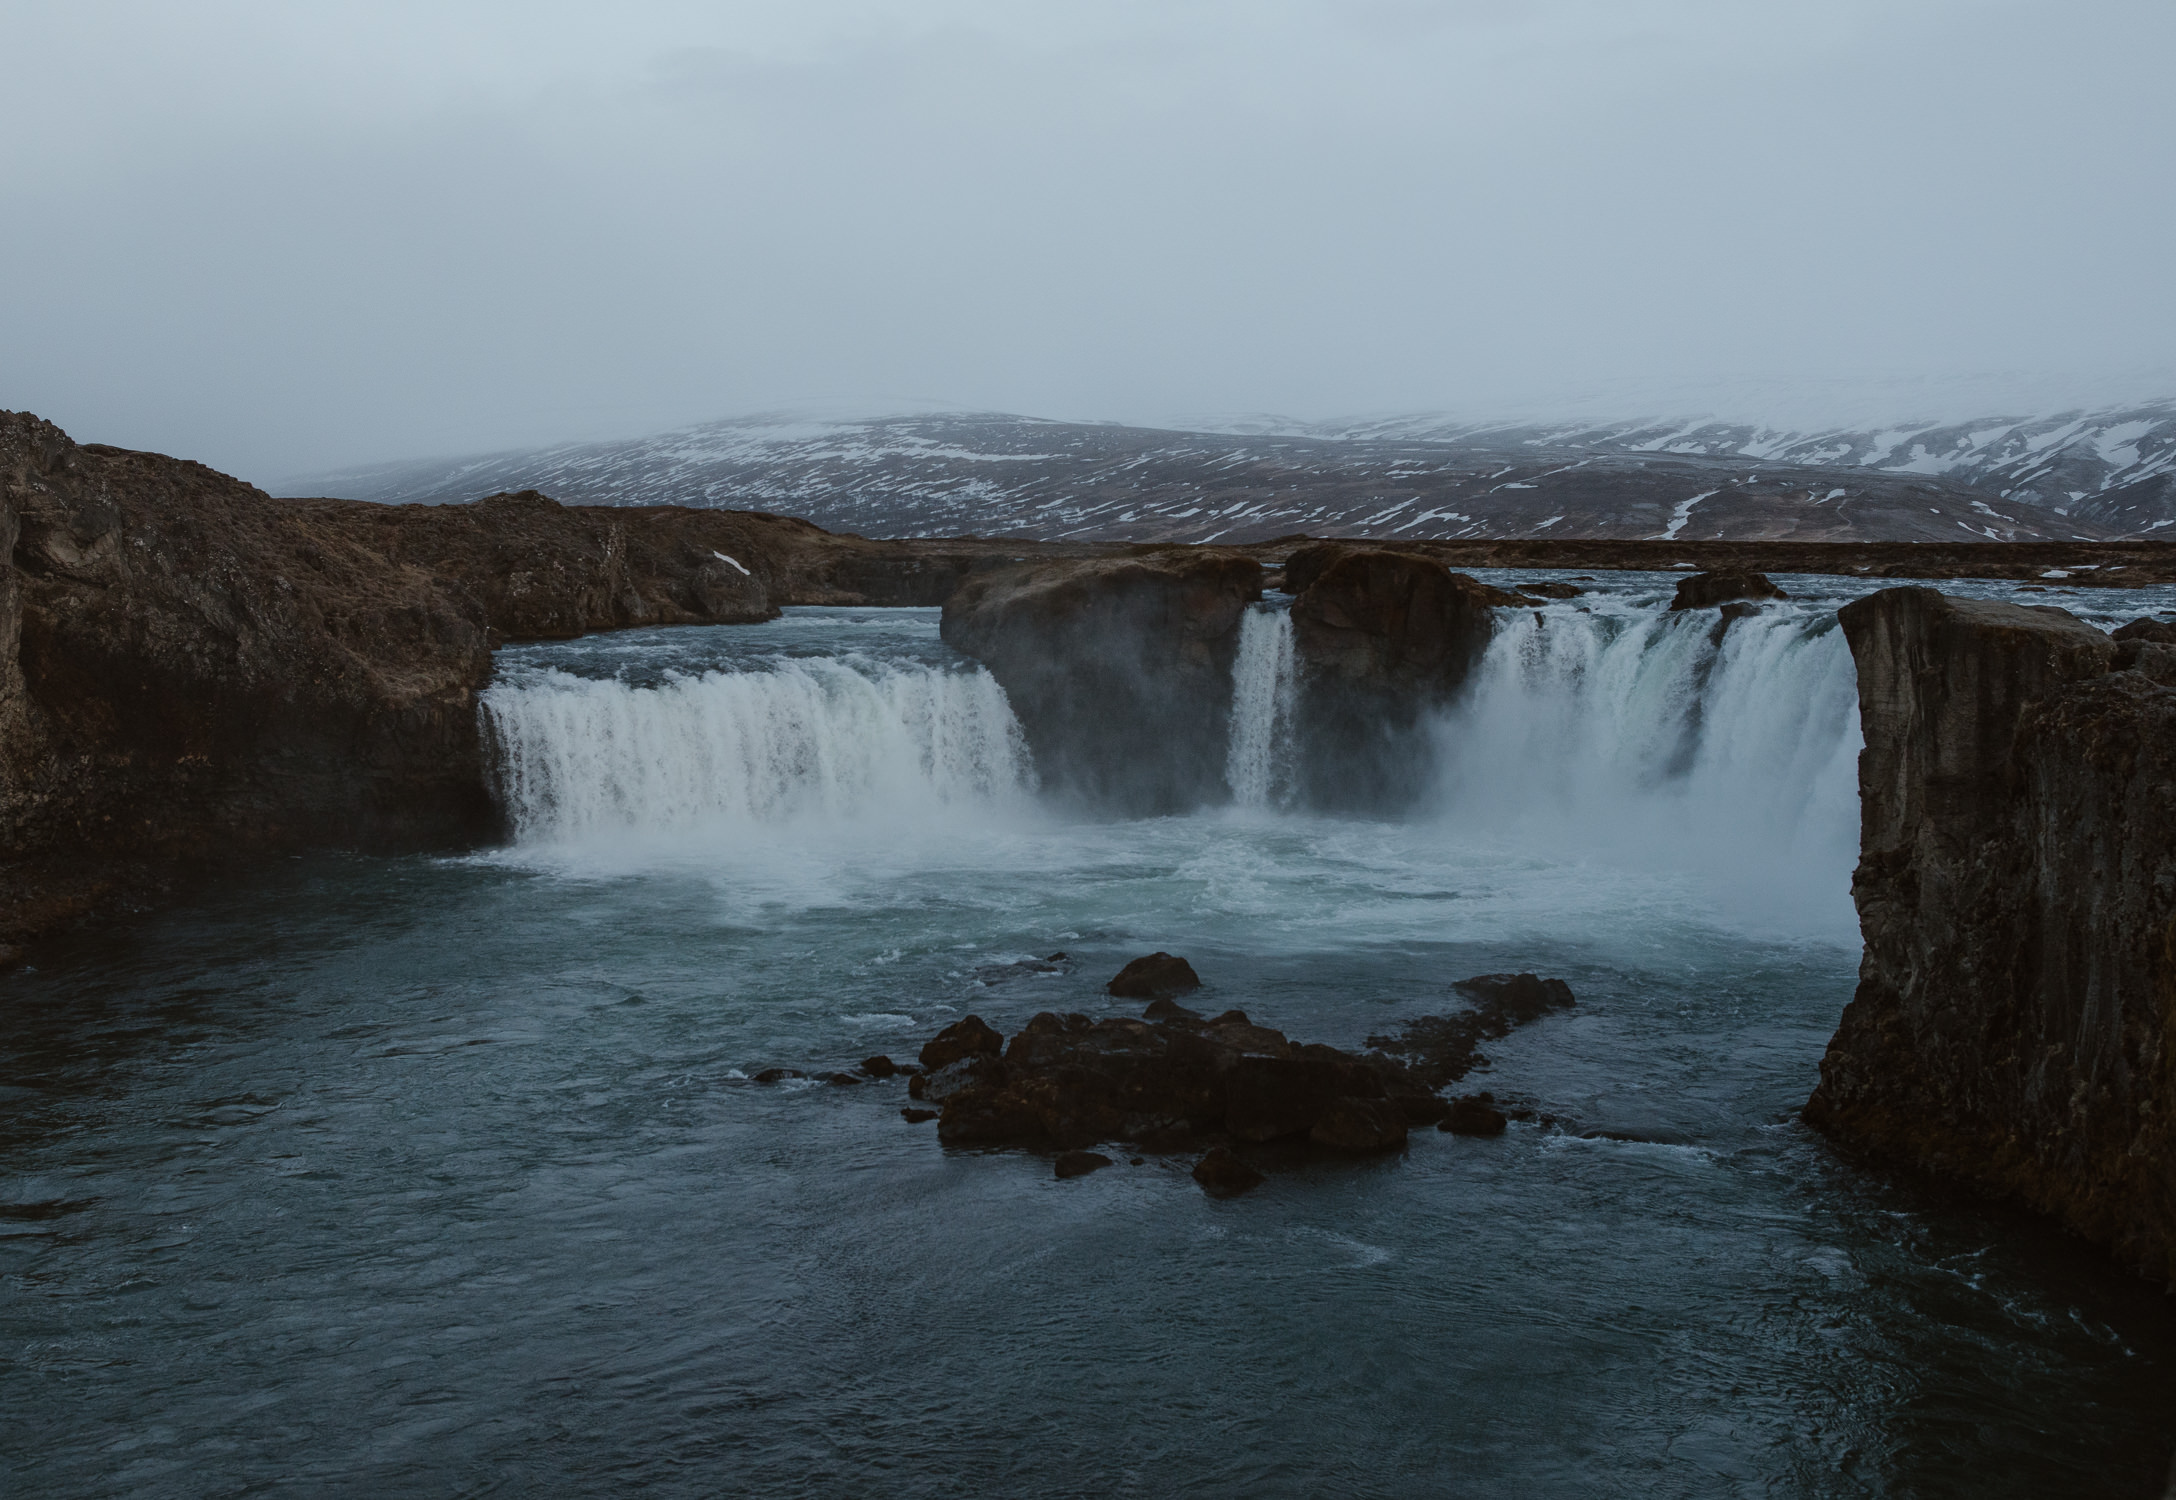 The best iceland road trip pictures-9.jpg